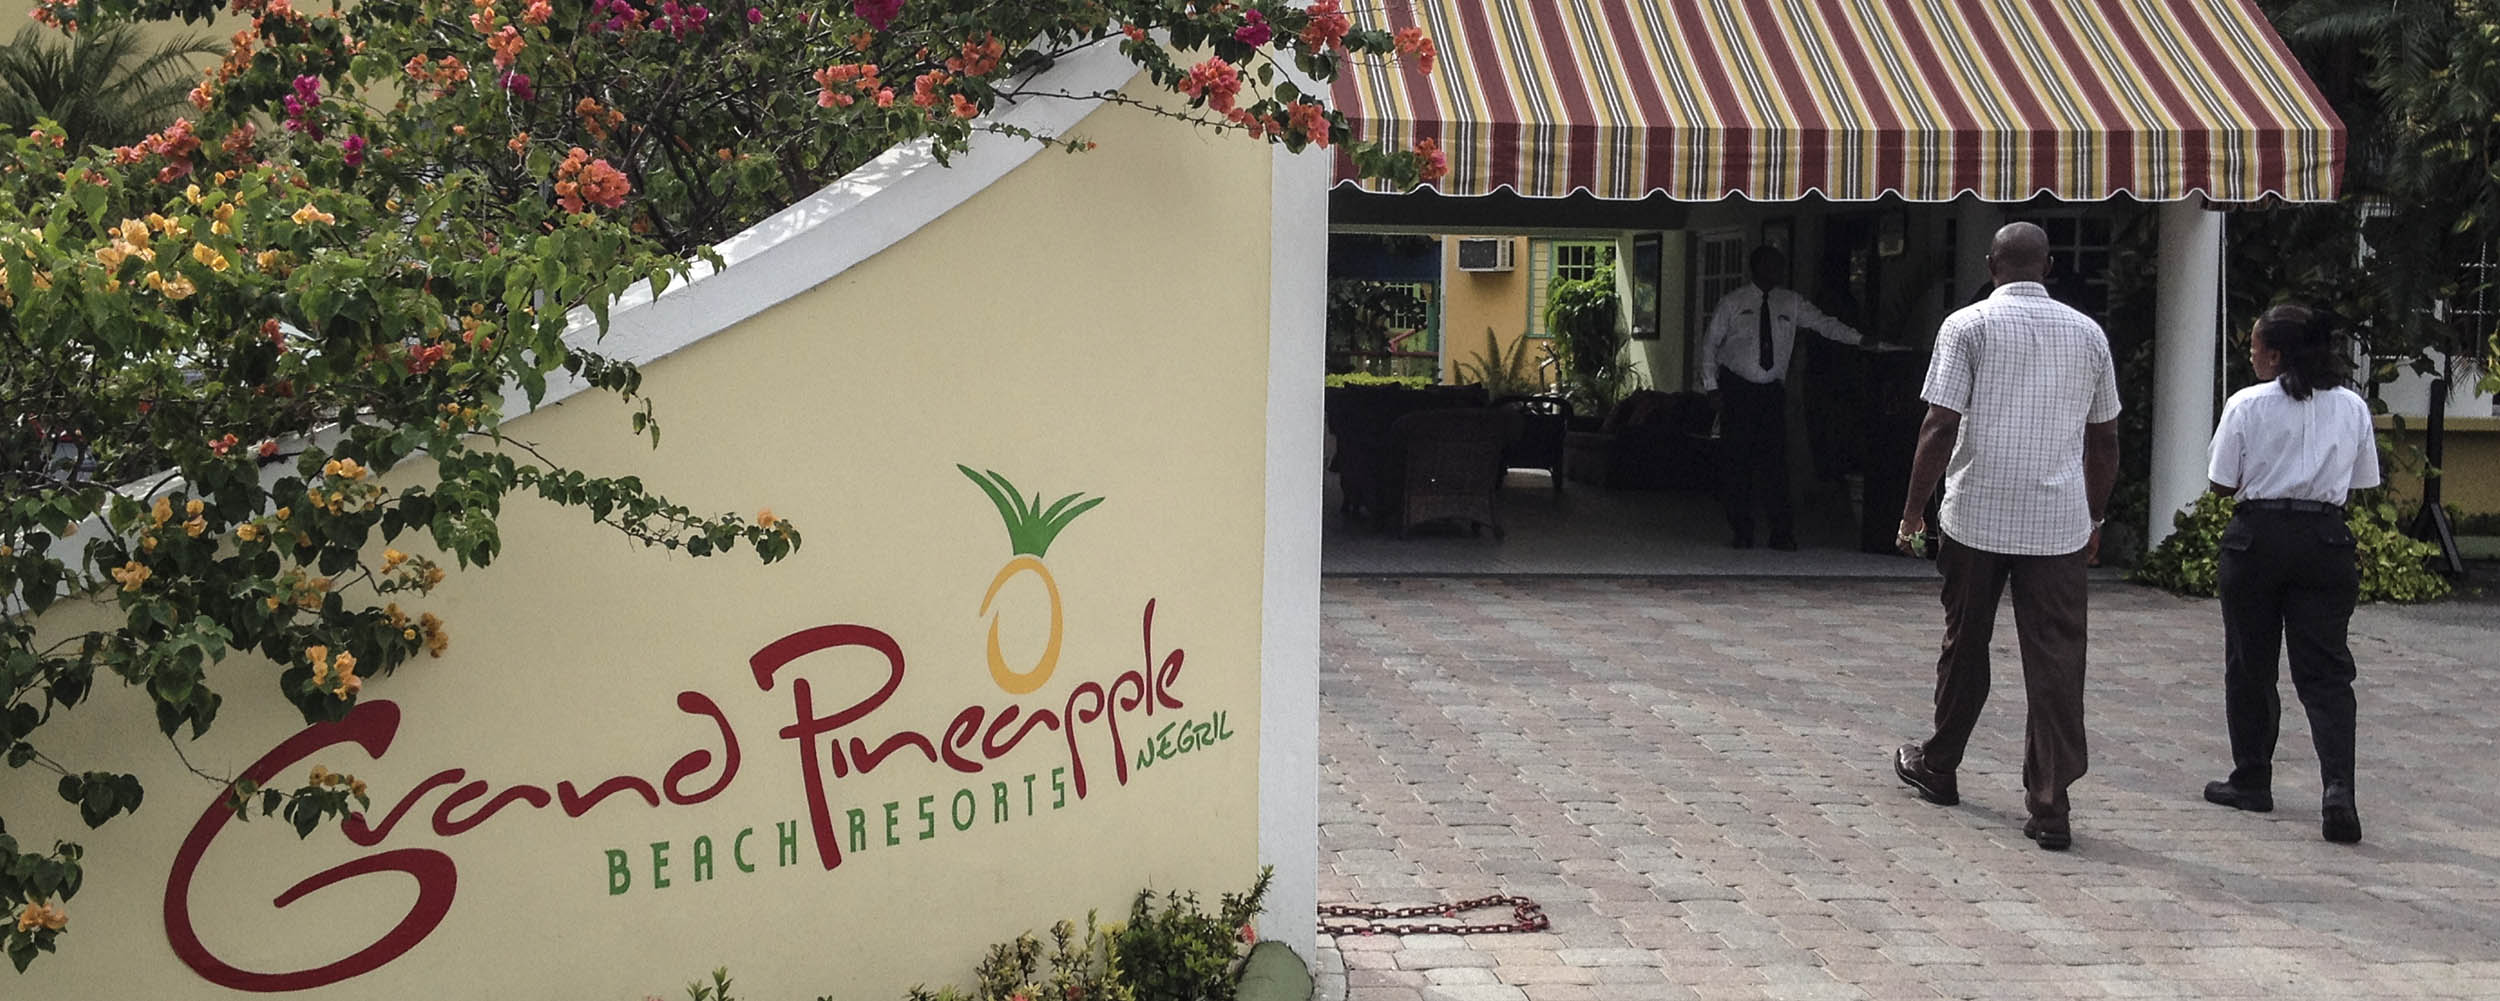 Grand Pineapple Beach Resort - Negril Jamaica